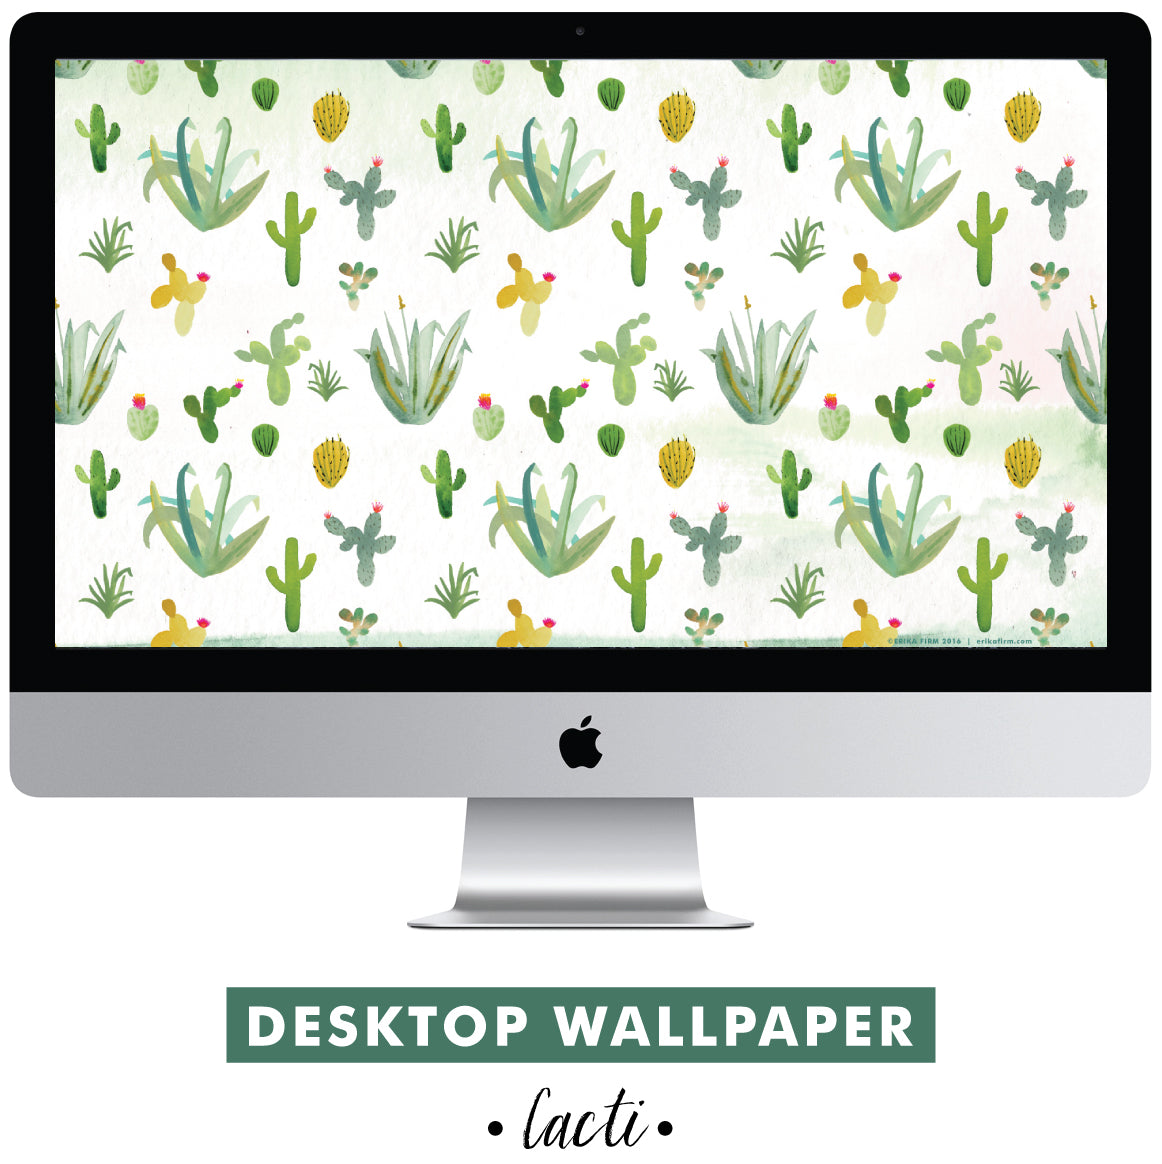 Cactus wallpaper for your desktop by Erika Firm